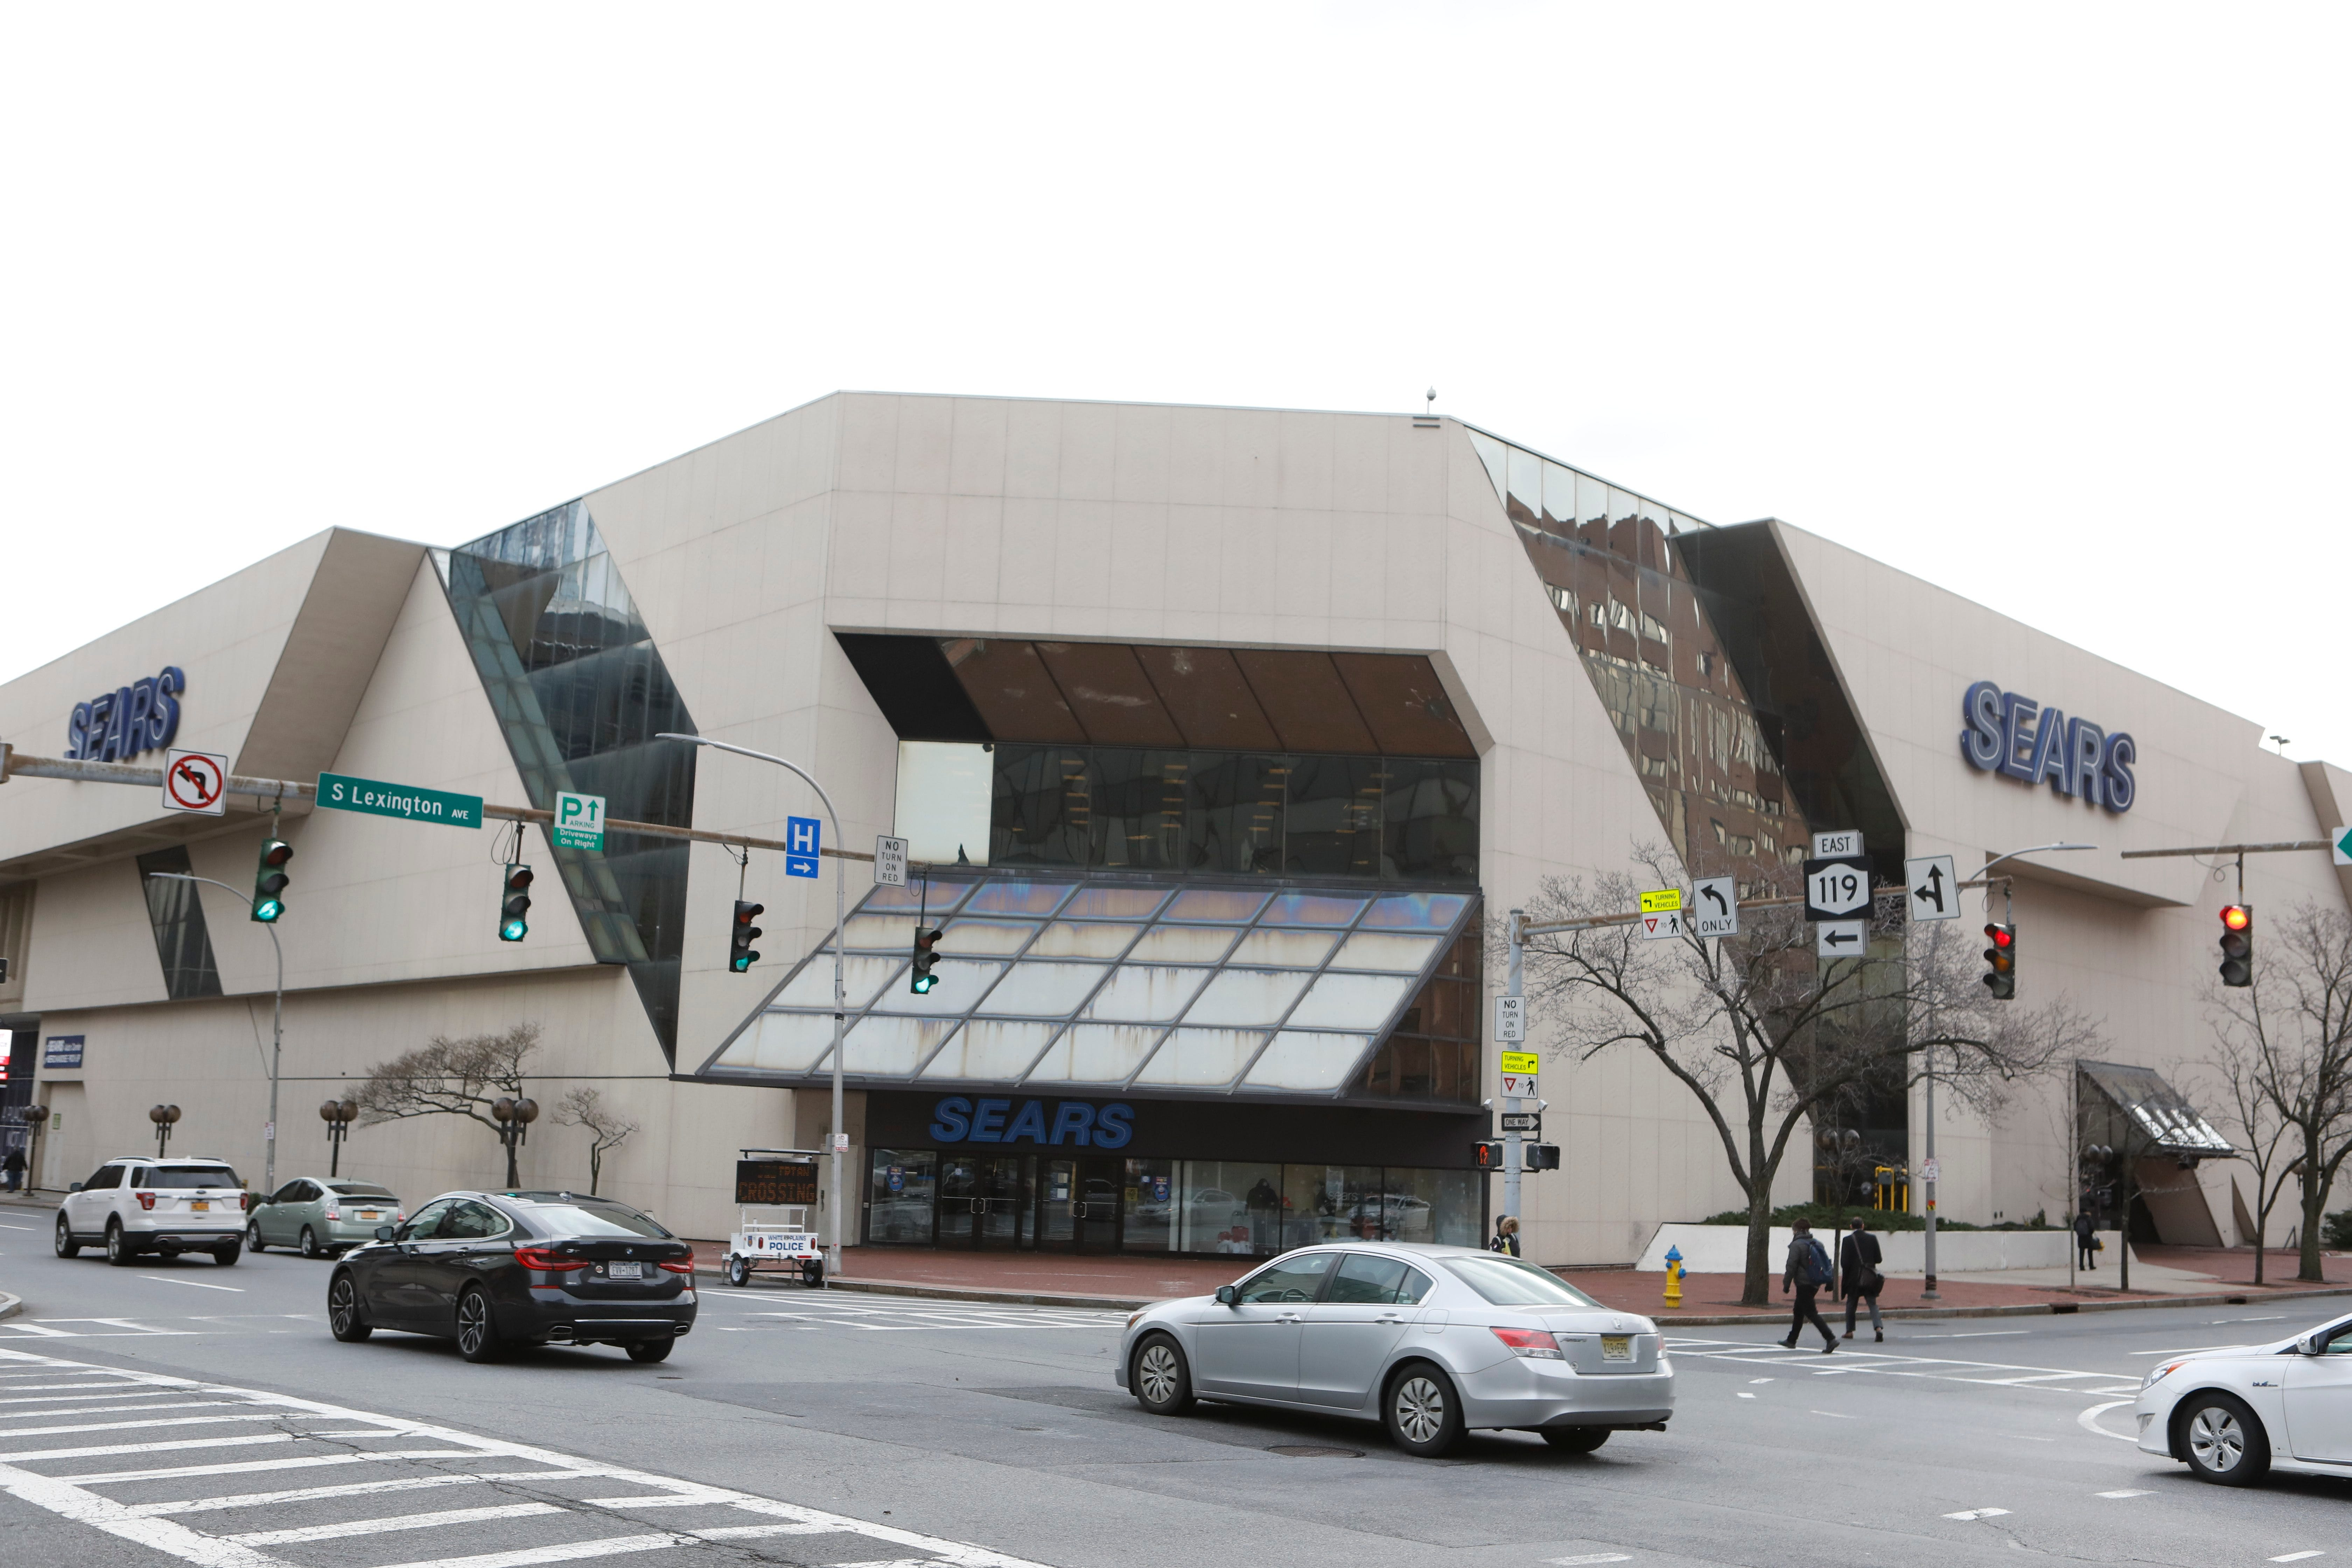 Sears store in White Plains, N.Y., watches its destiny decided in courthouse 2 blocks away